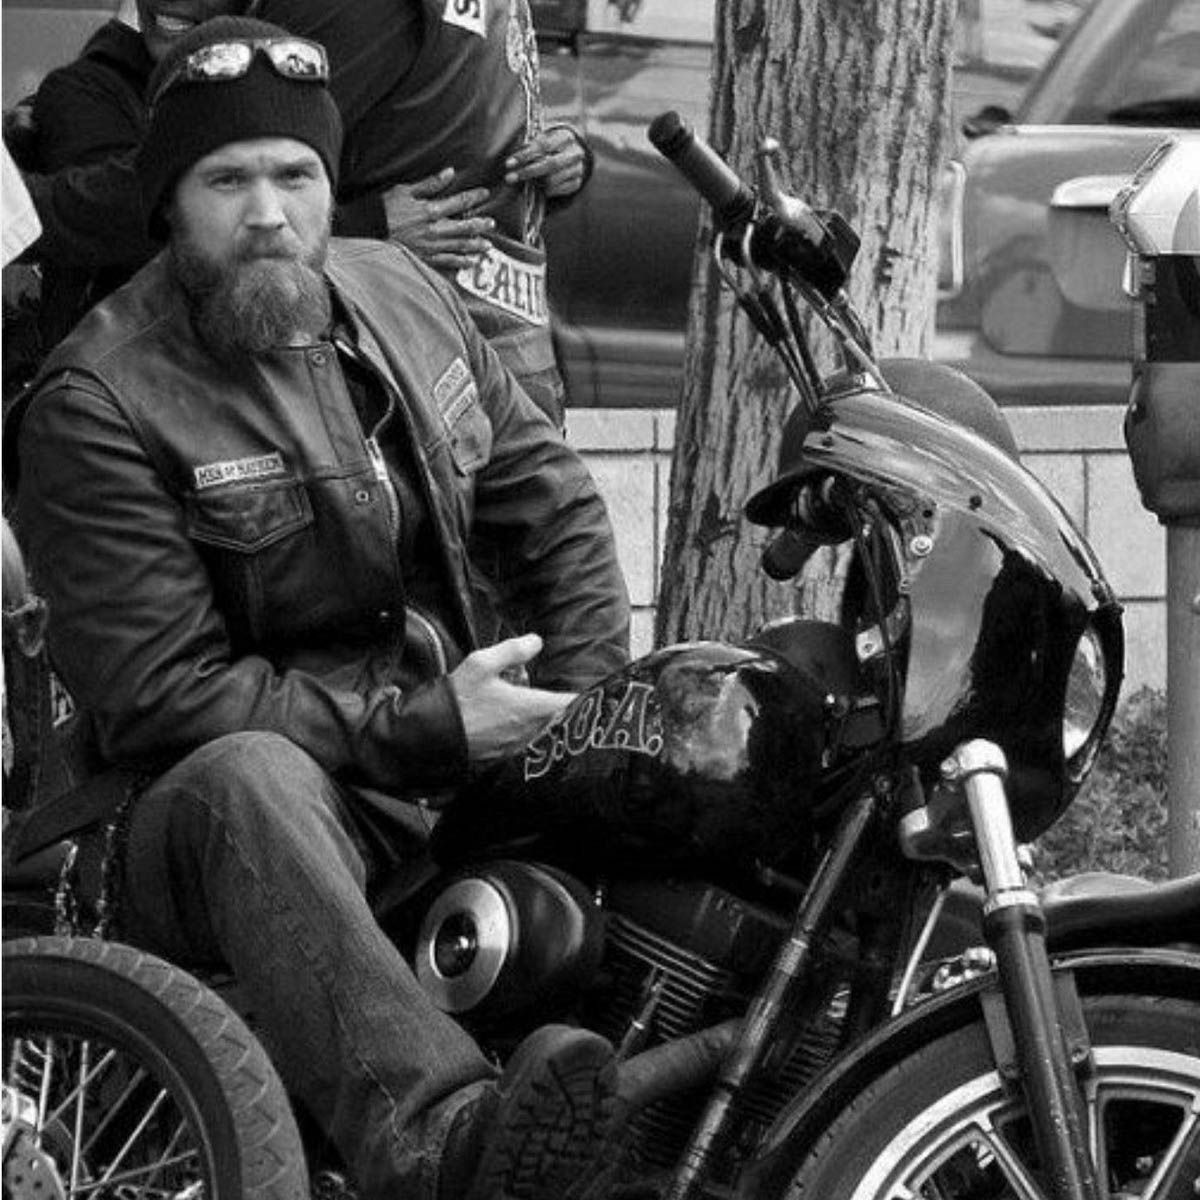 Check Out This Incredible Harley Davidson Donated To Charity By Ryan Hurst